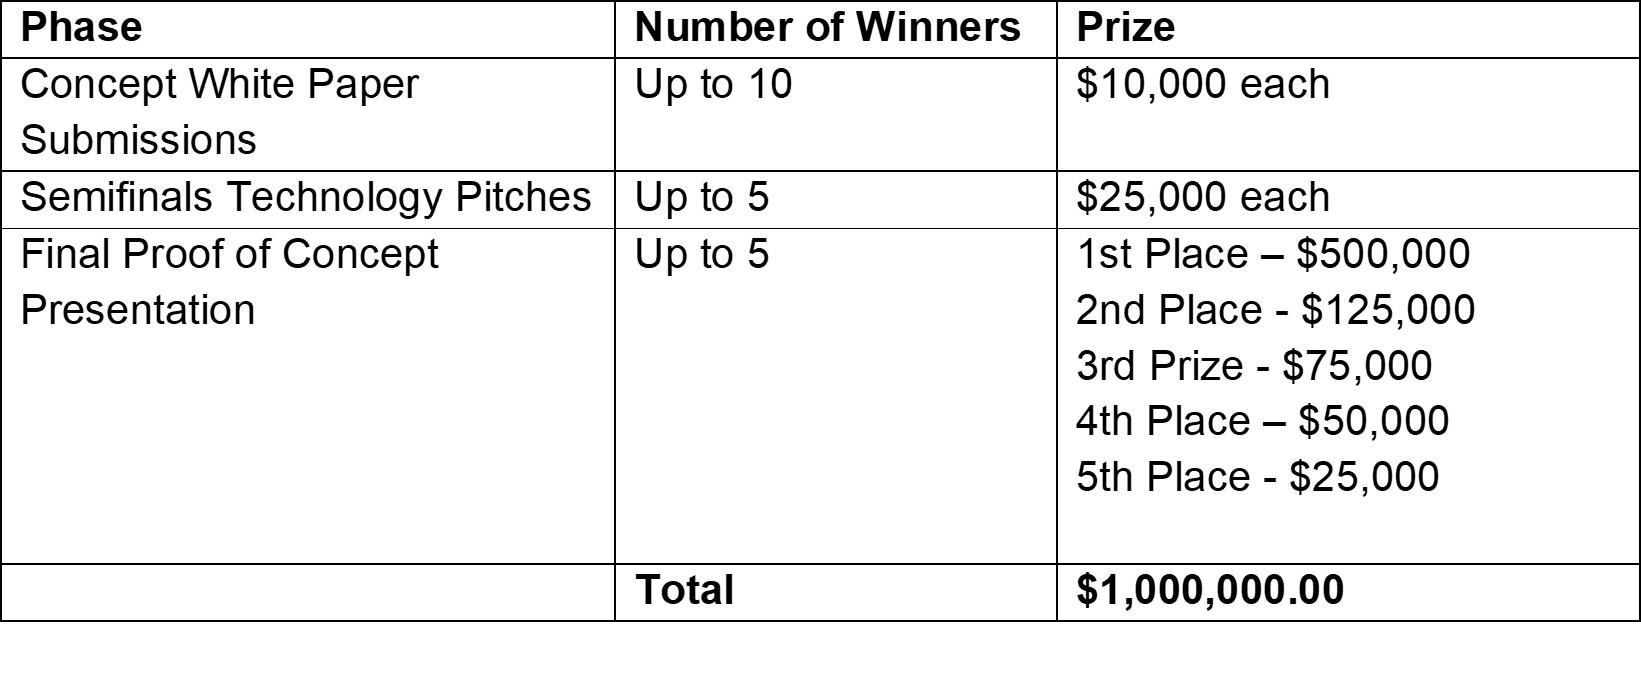 Prize Structure - Breakdown